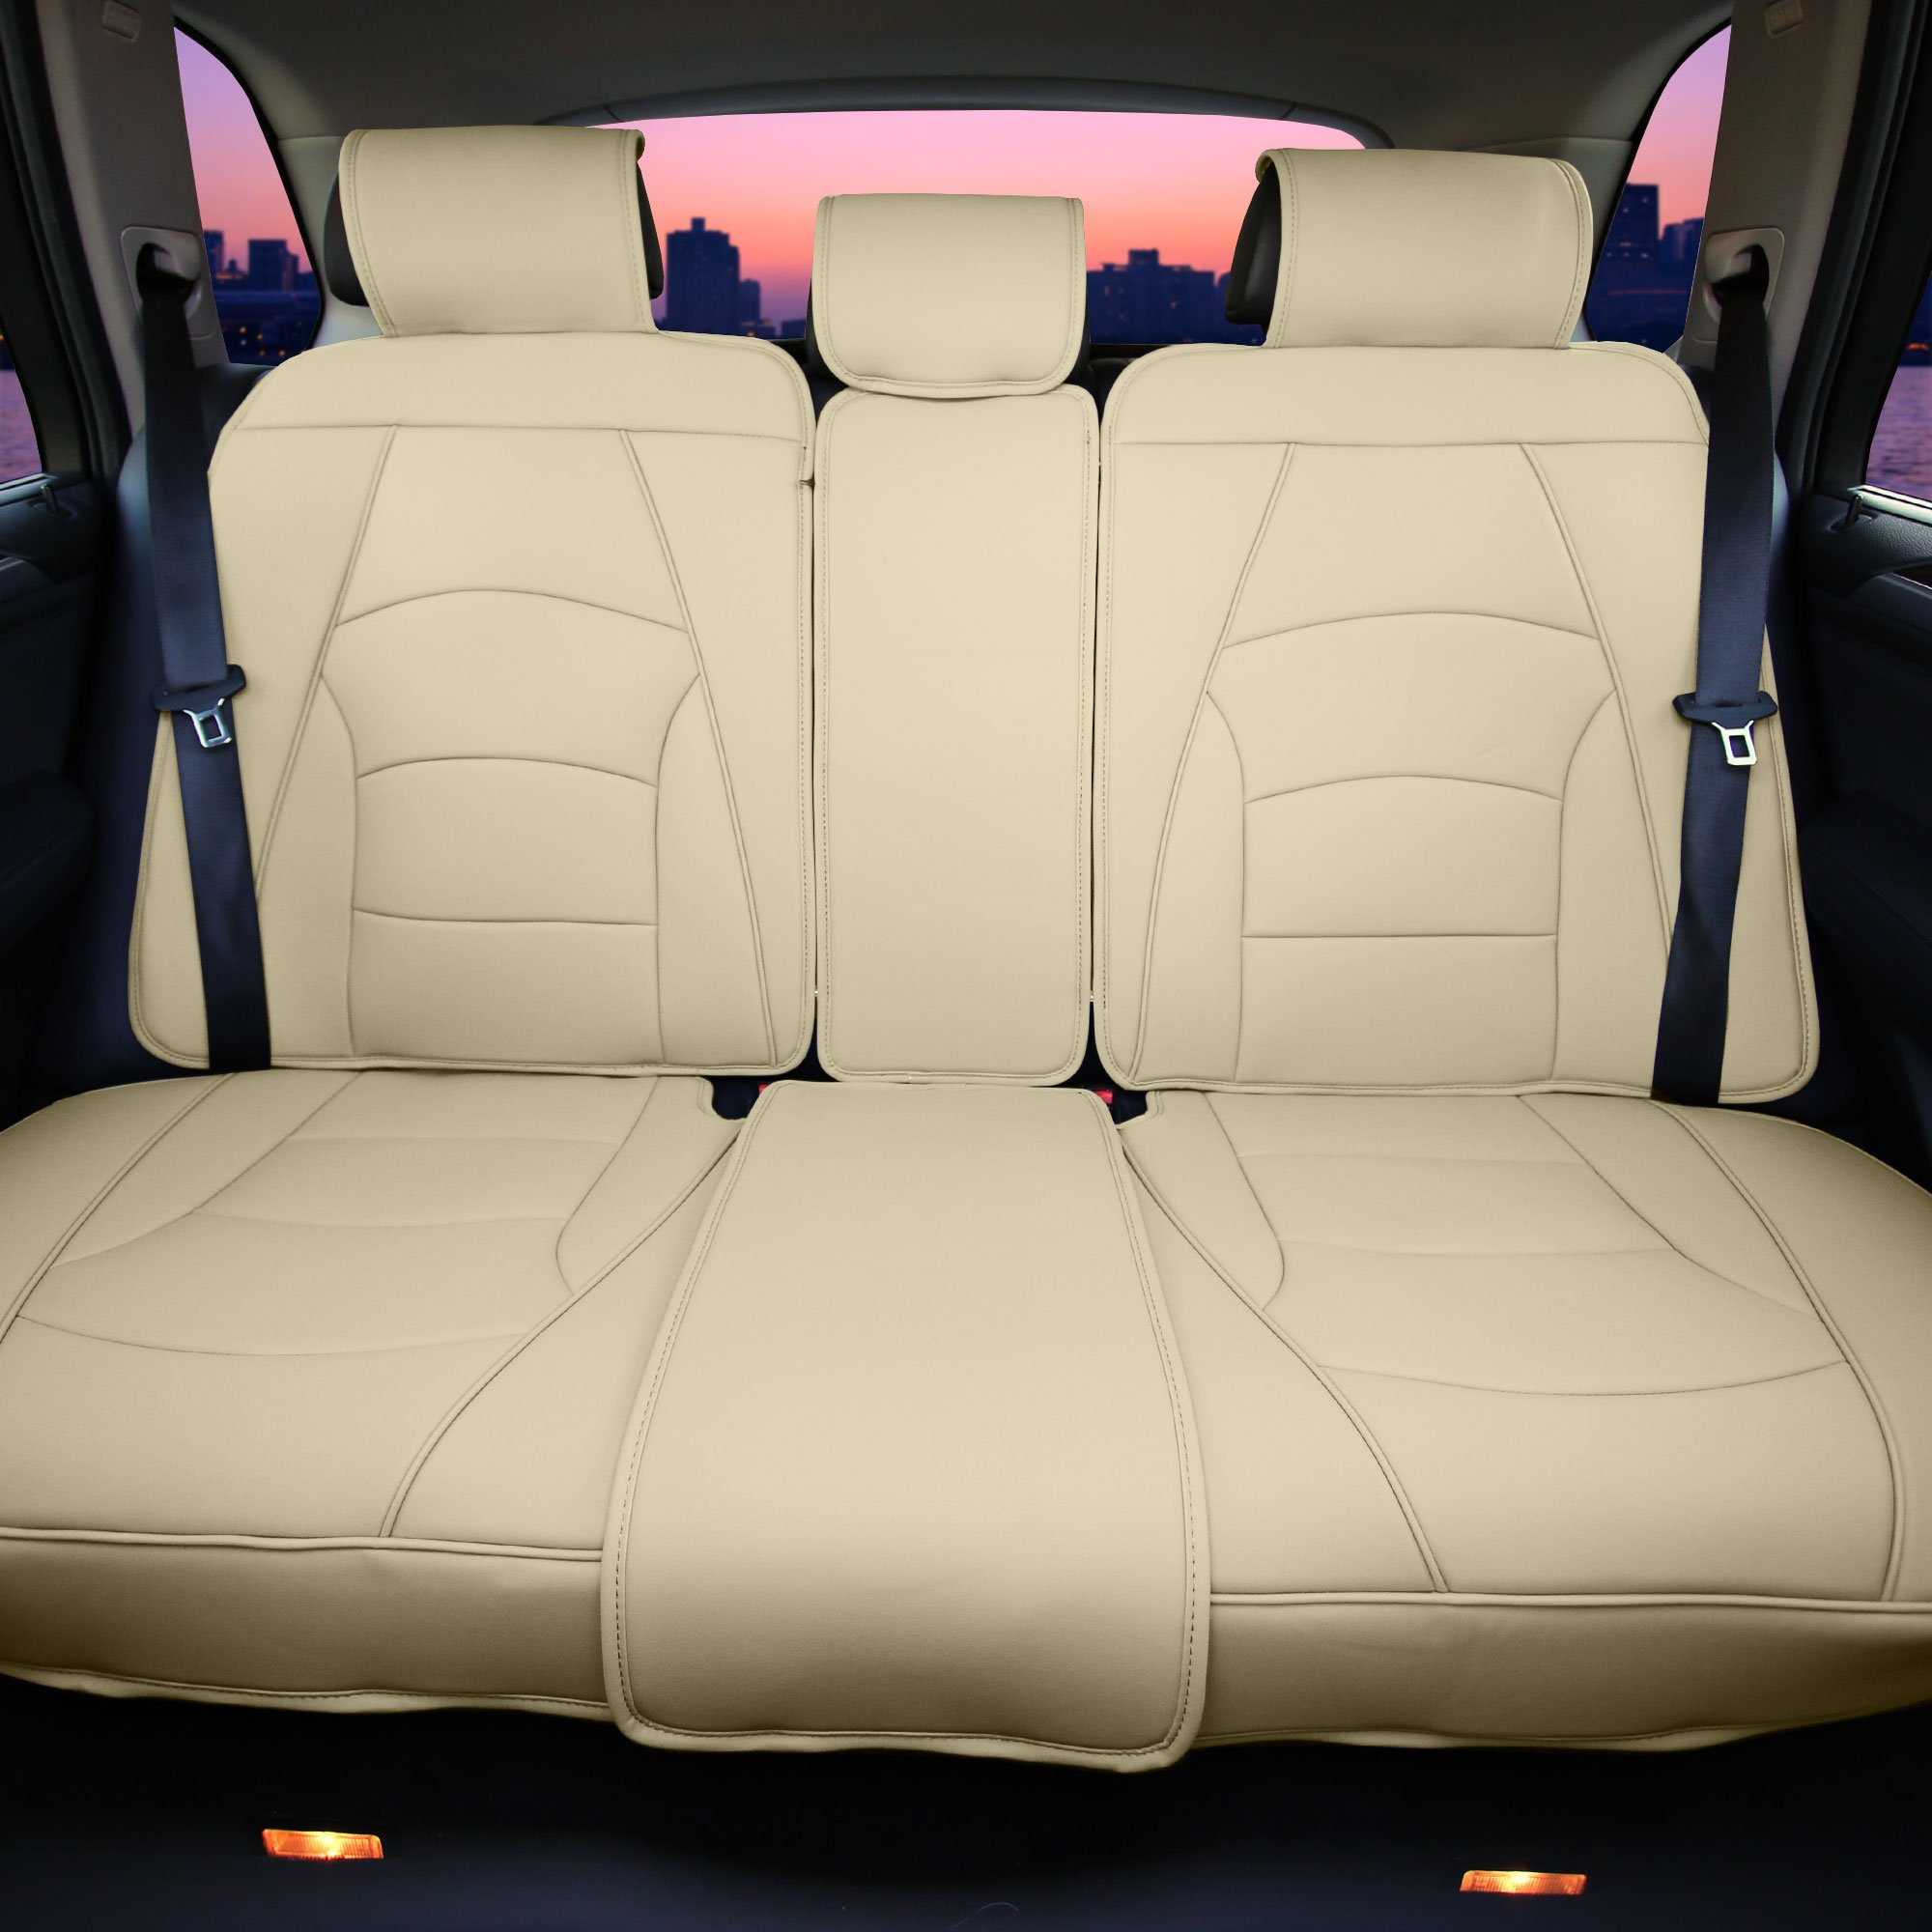 FH Group PU205013SOLIDBEIGE Bench PU205SOLIDBEIGE013 Ultra Comfort Leatherette Rear Seat Cushions Solid Beige